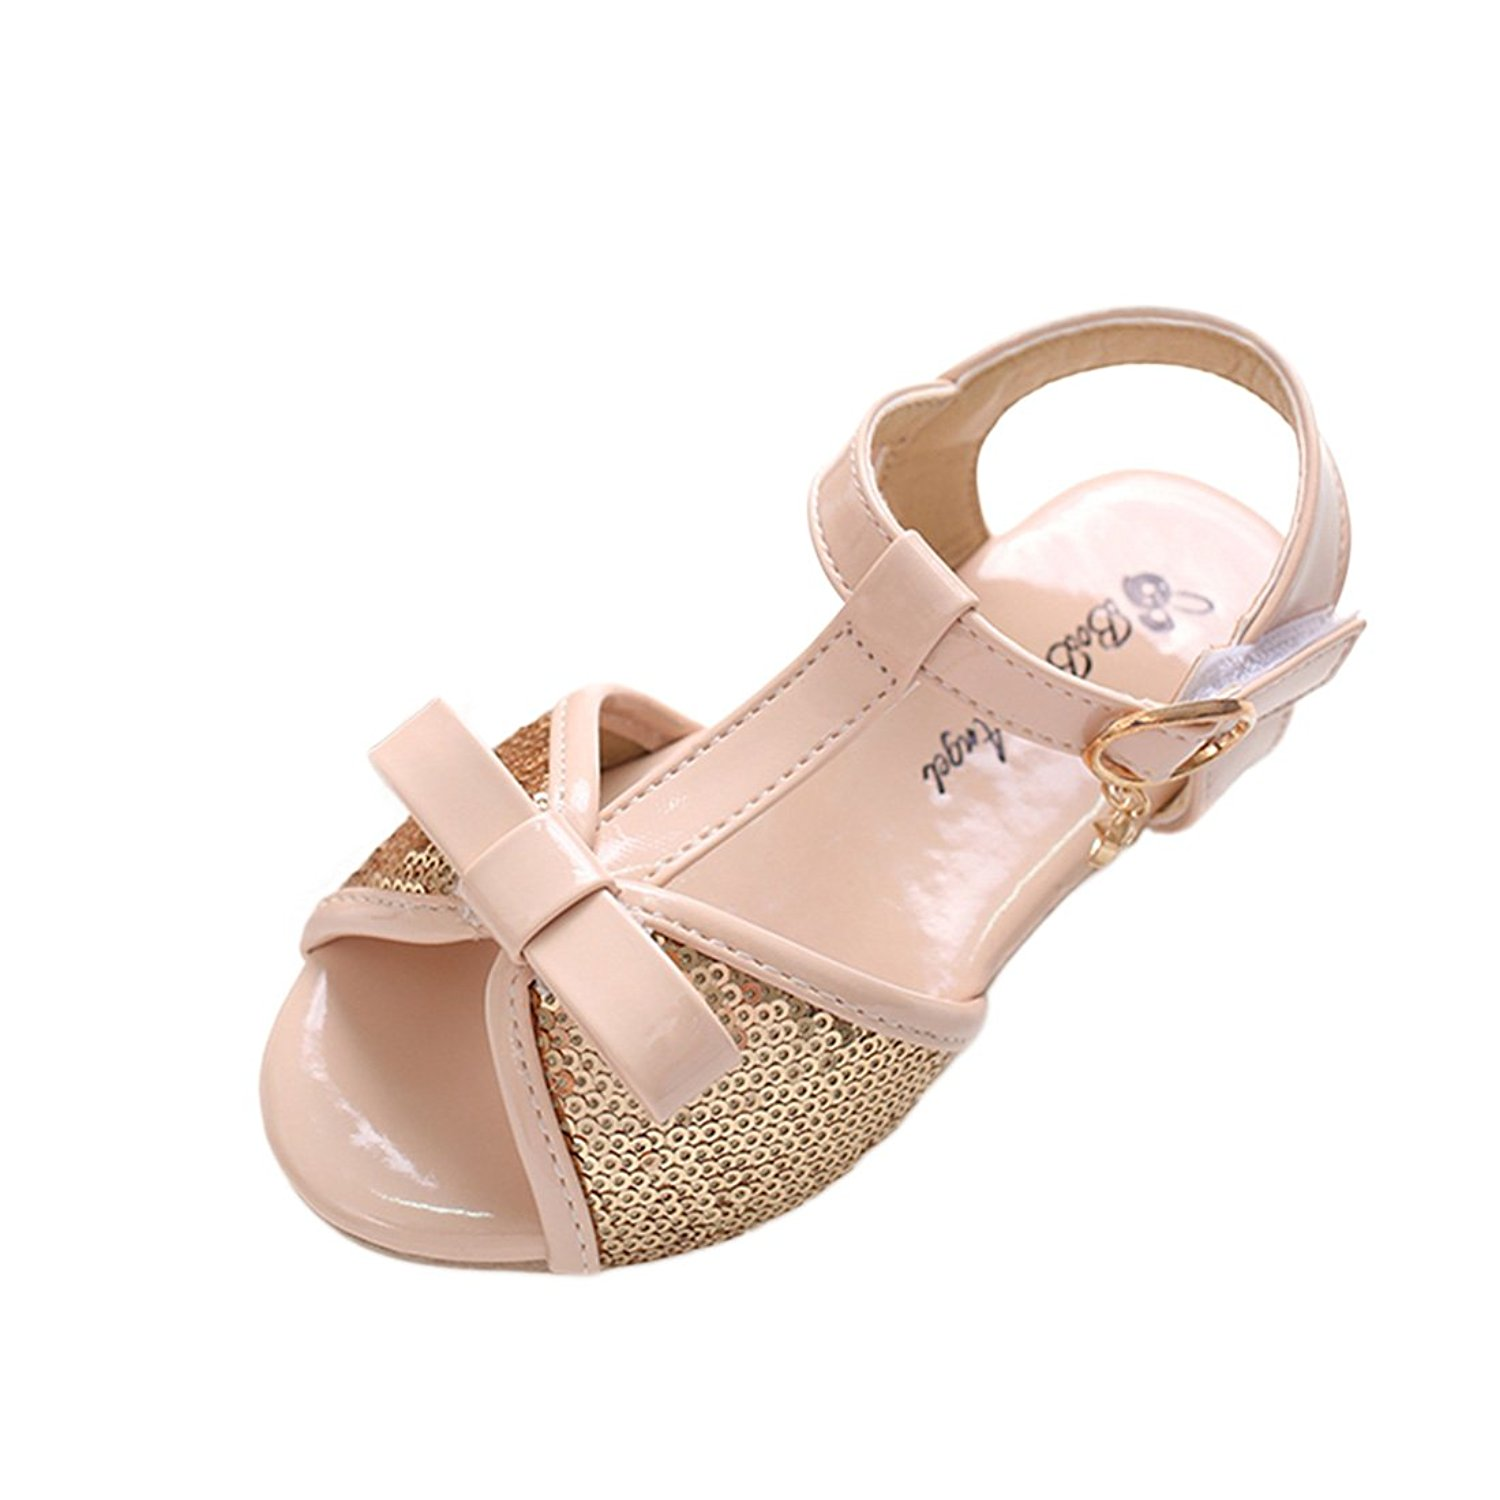 YIBLBOX Kids Girls Sequin Wedding Sandals Princess Flat Shoes Dance Party Bowknot Mary Janes